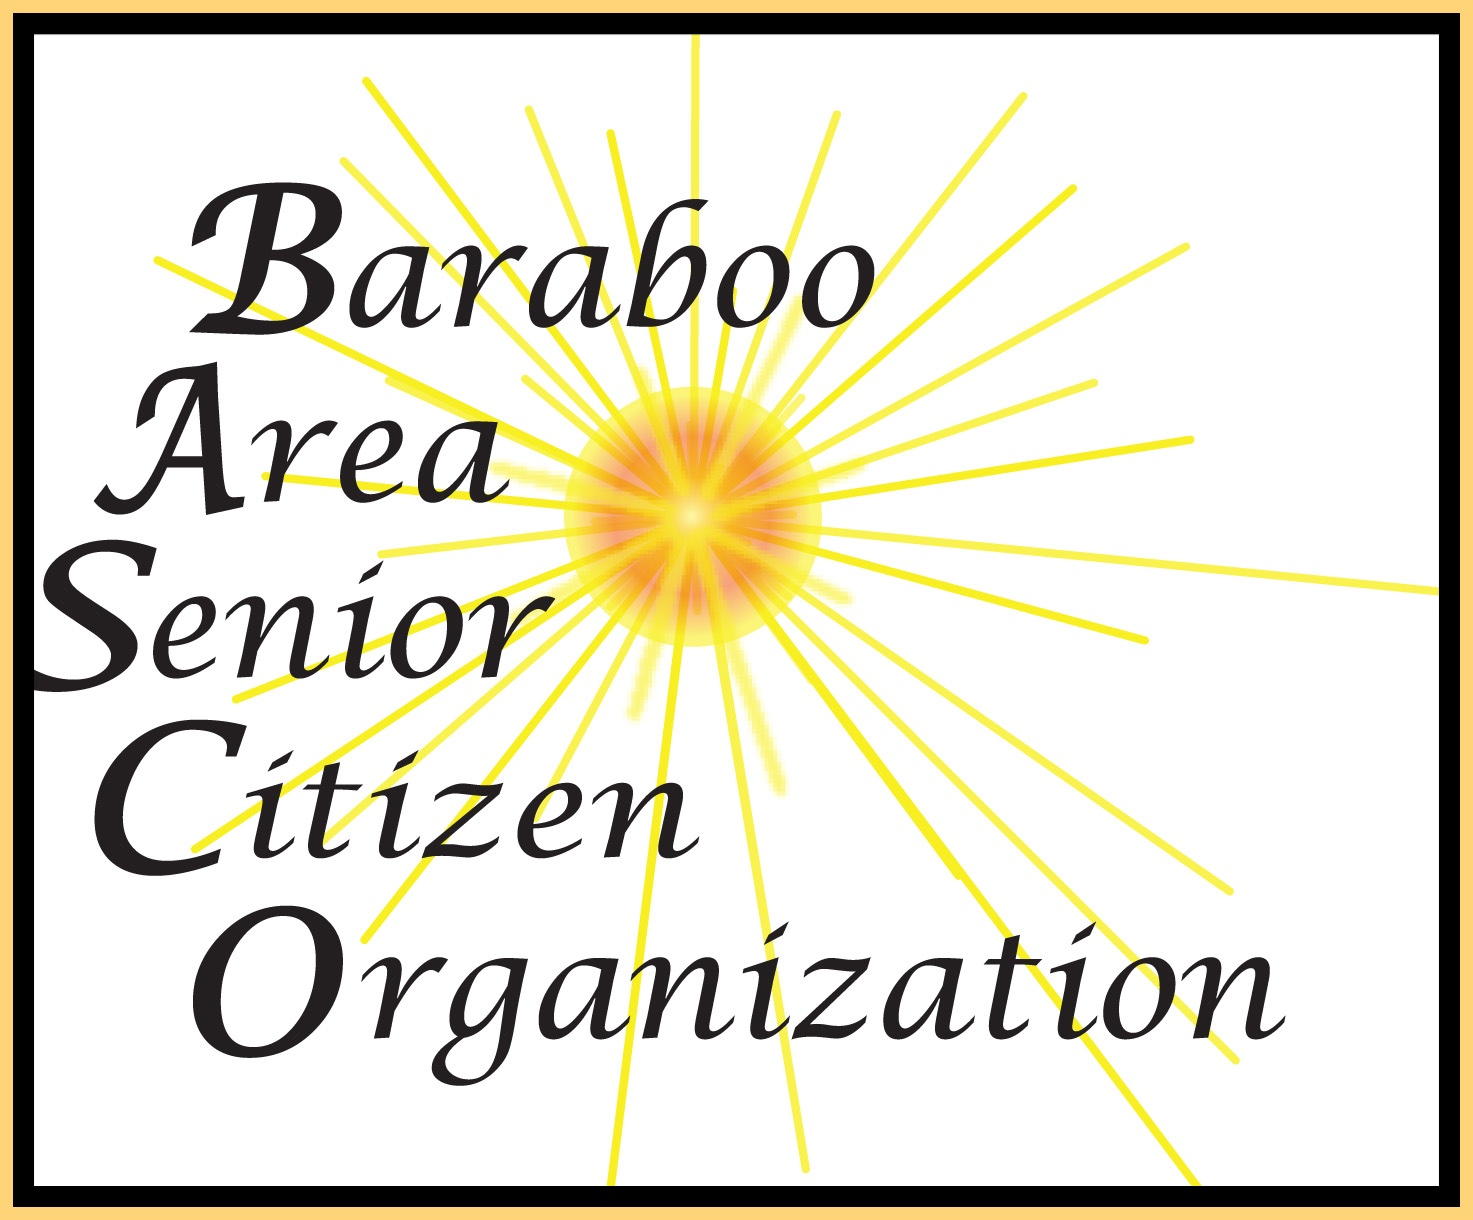 Baraboo Area Senior Citizen Organization